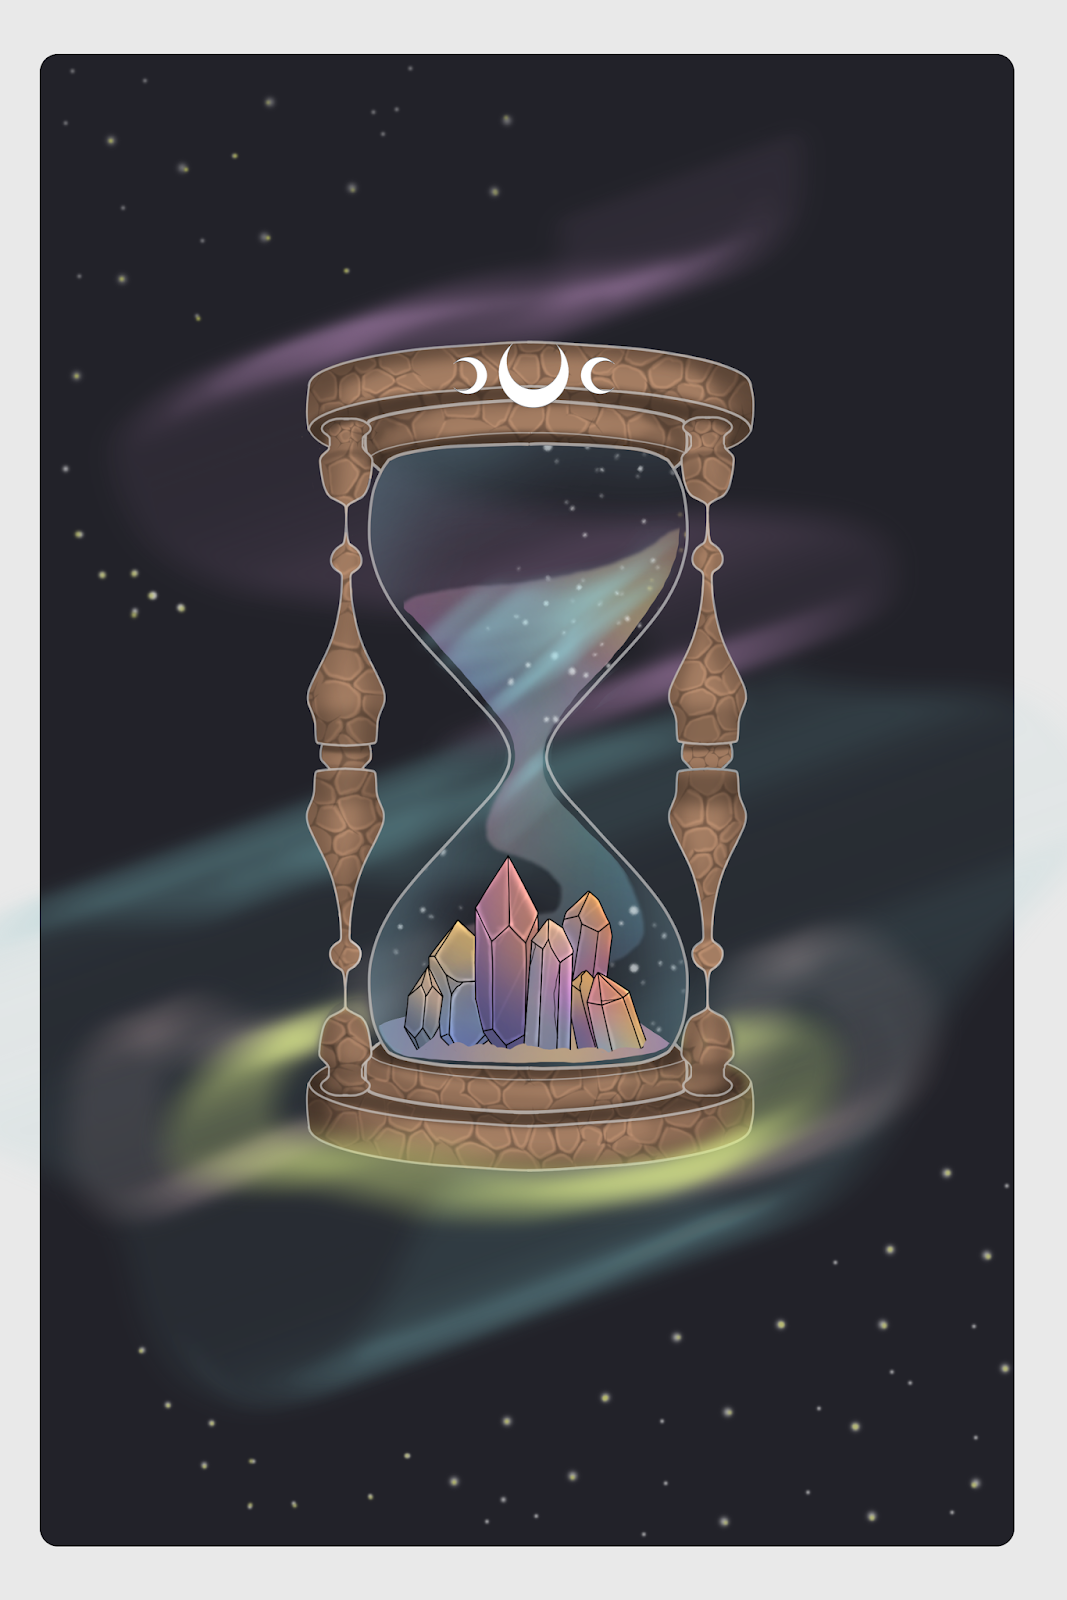 crystals in a hourglass drawing